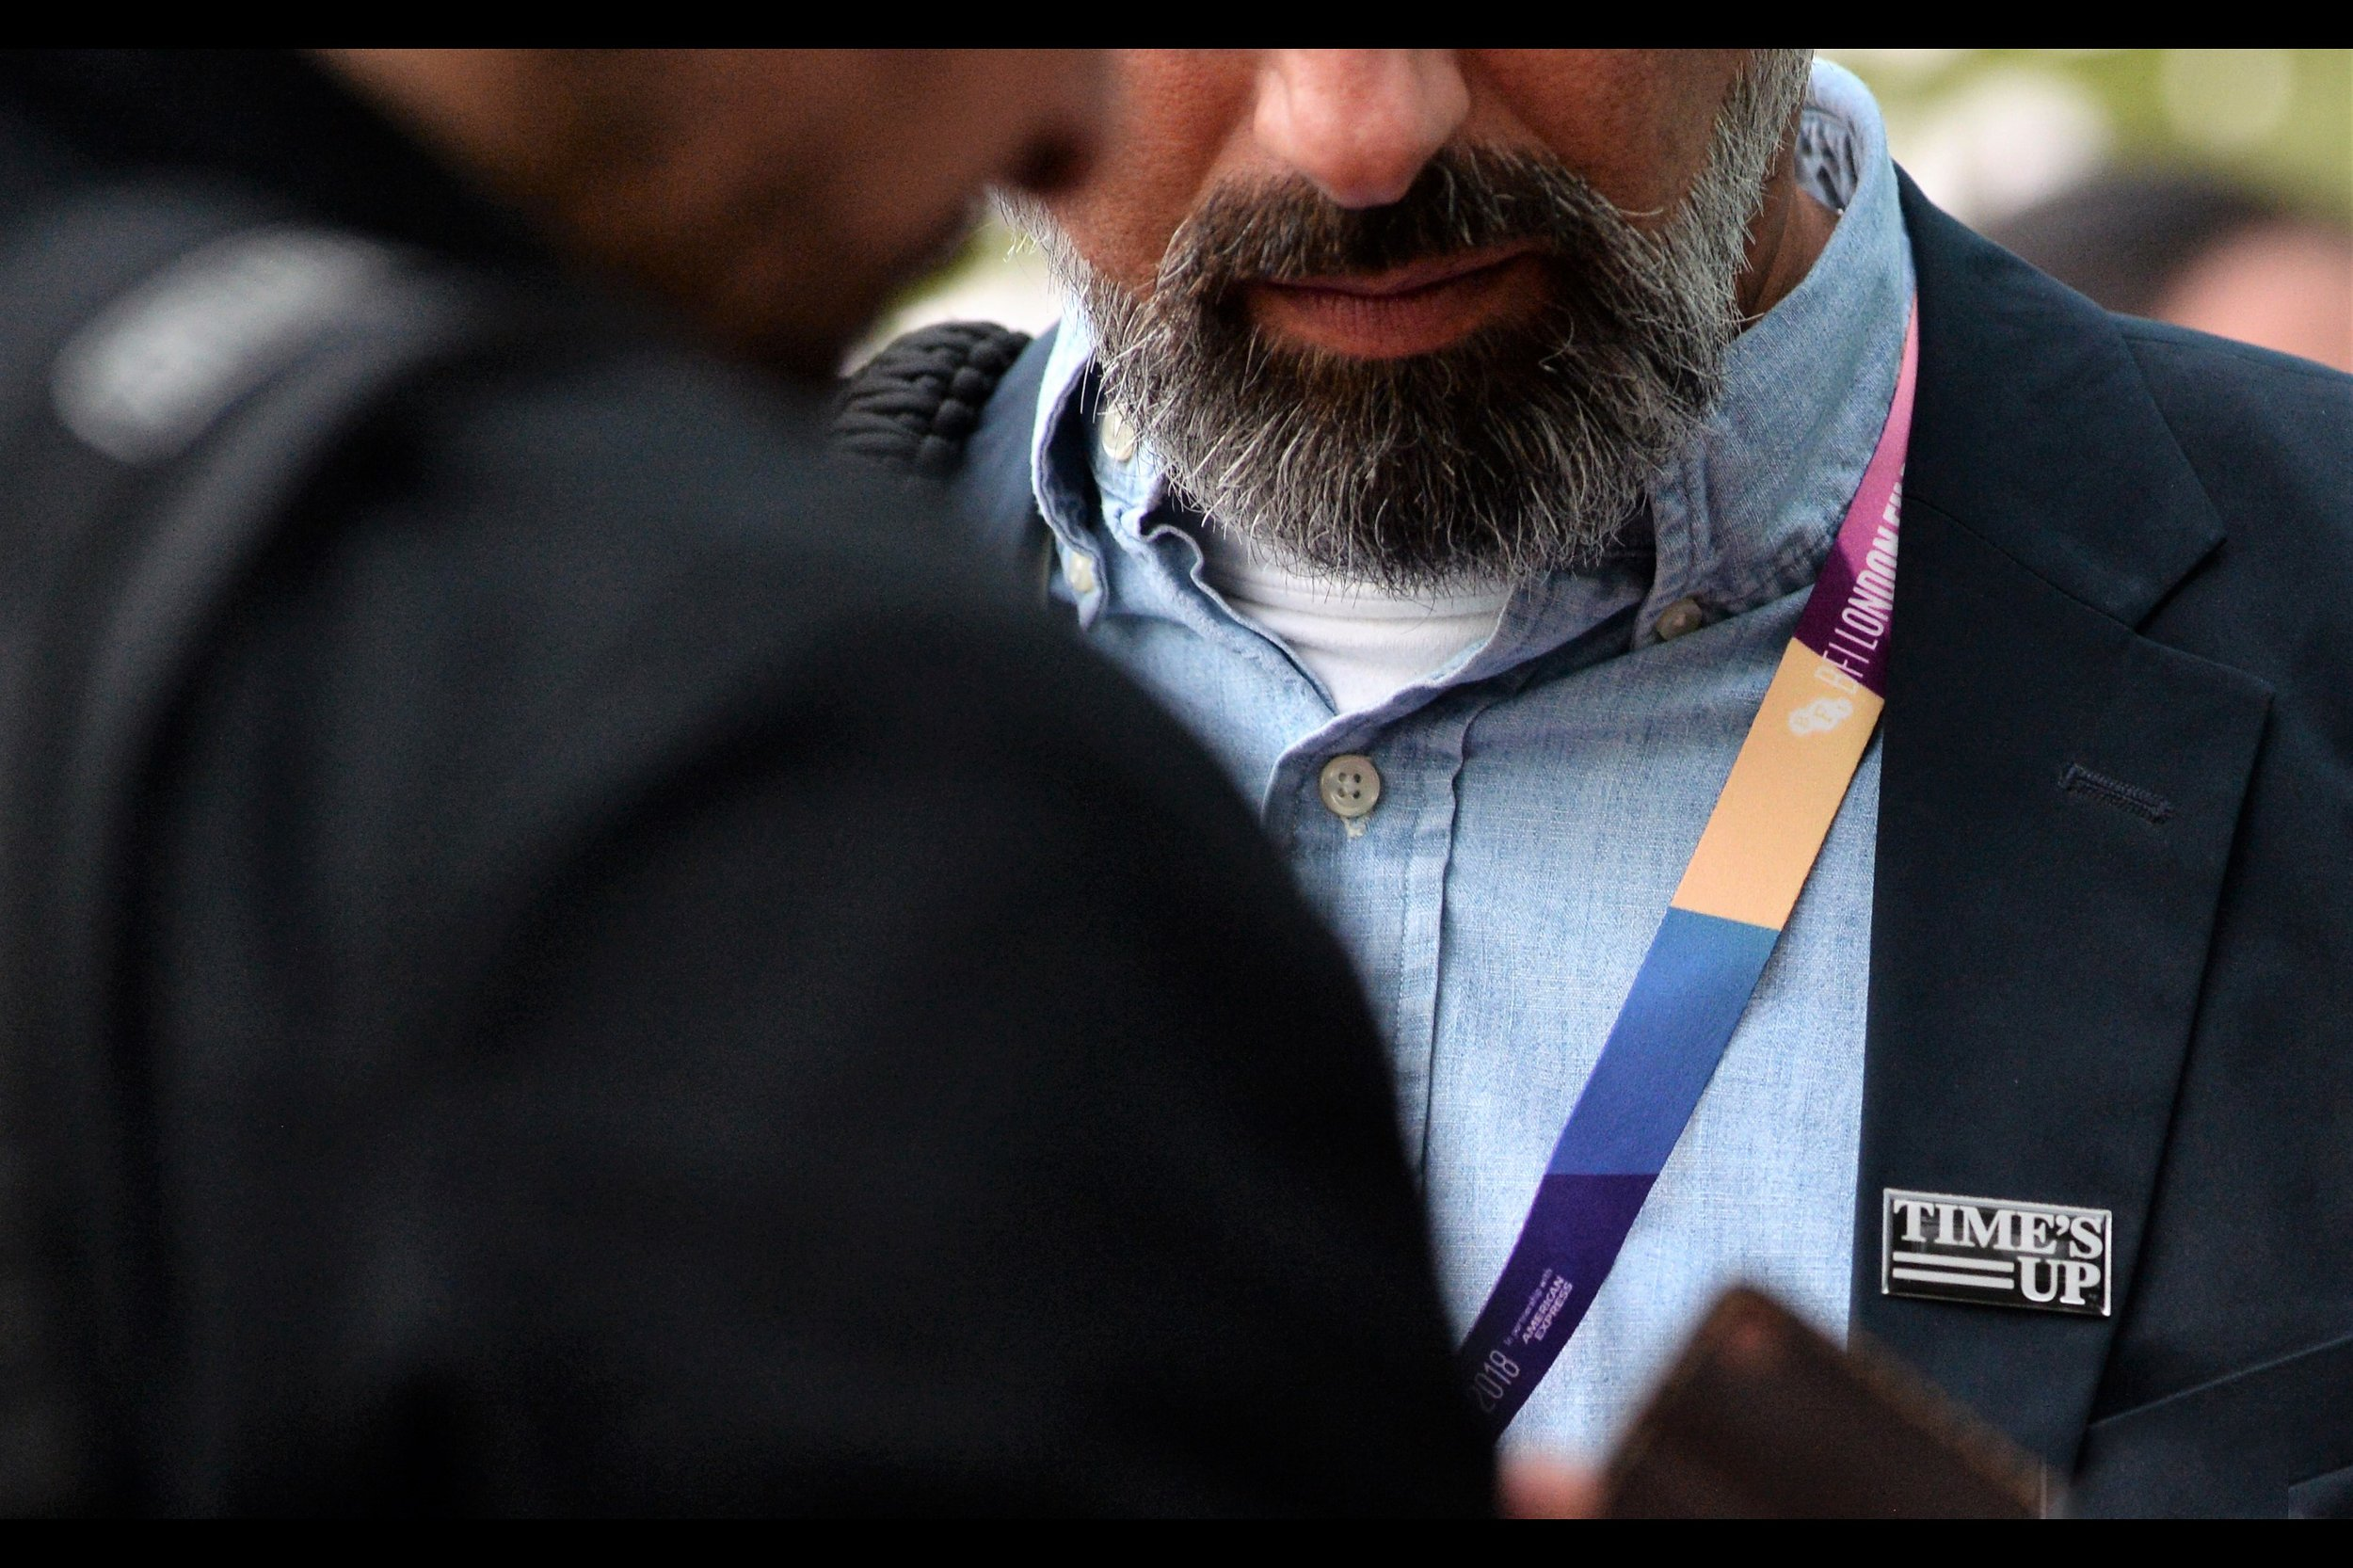 My initial feeling on Time's Up was that any organisation that bascially bullied, coerced and name-and-shamed people who didn't wear their slogan was unlikely to last long. But now that not everyone's wearing these badges, they somehow seem more sincere. Just my thought.